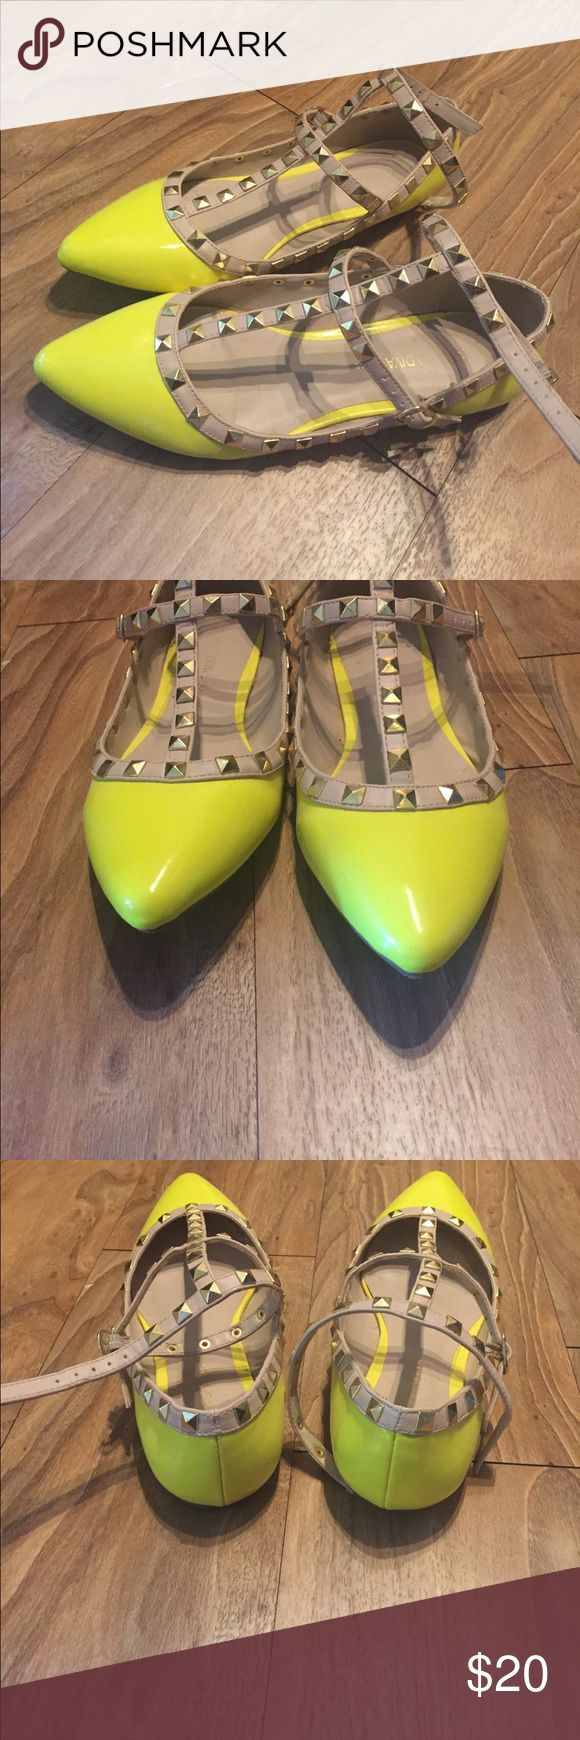 Flats Neon flats. Gently worn. Wild Diva Shoes Flats & Loafers